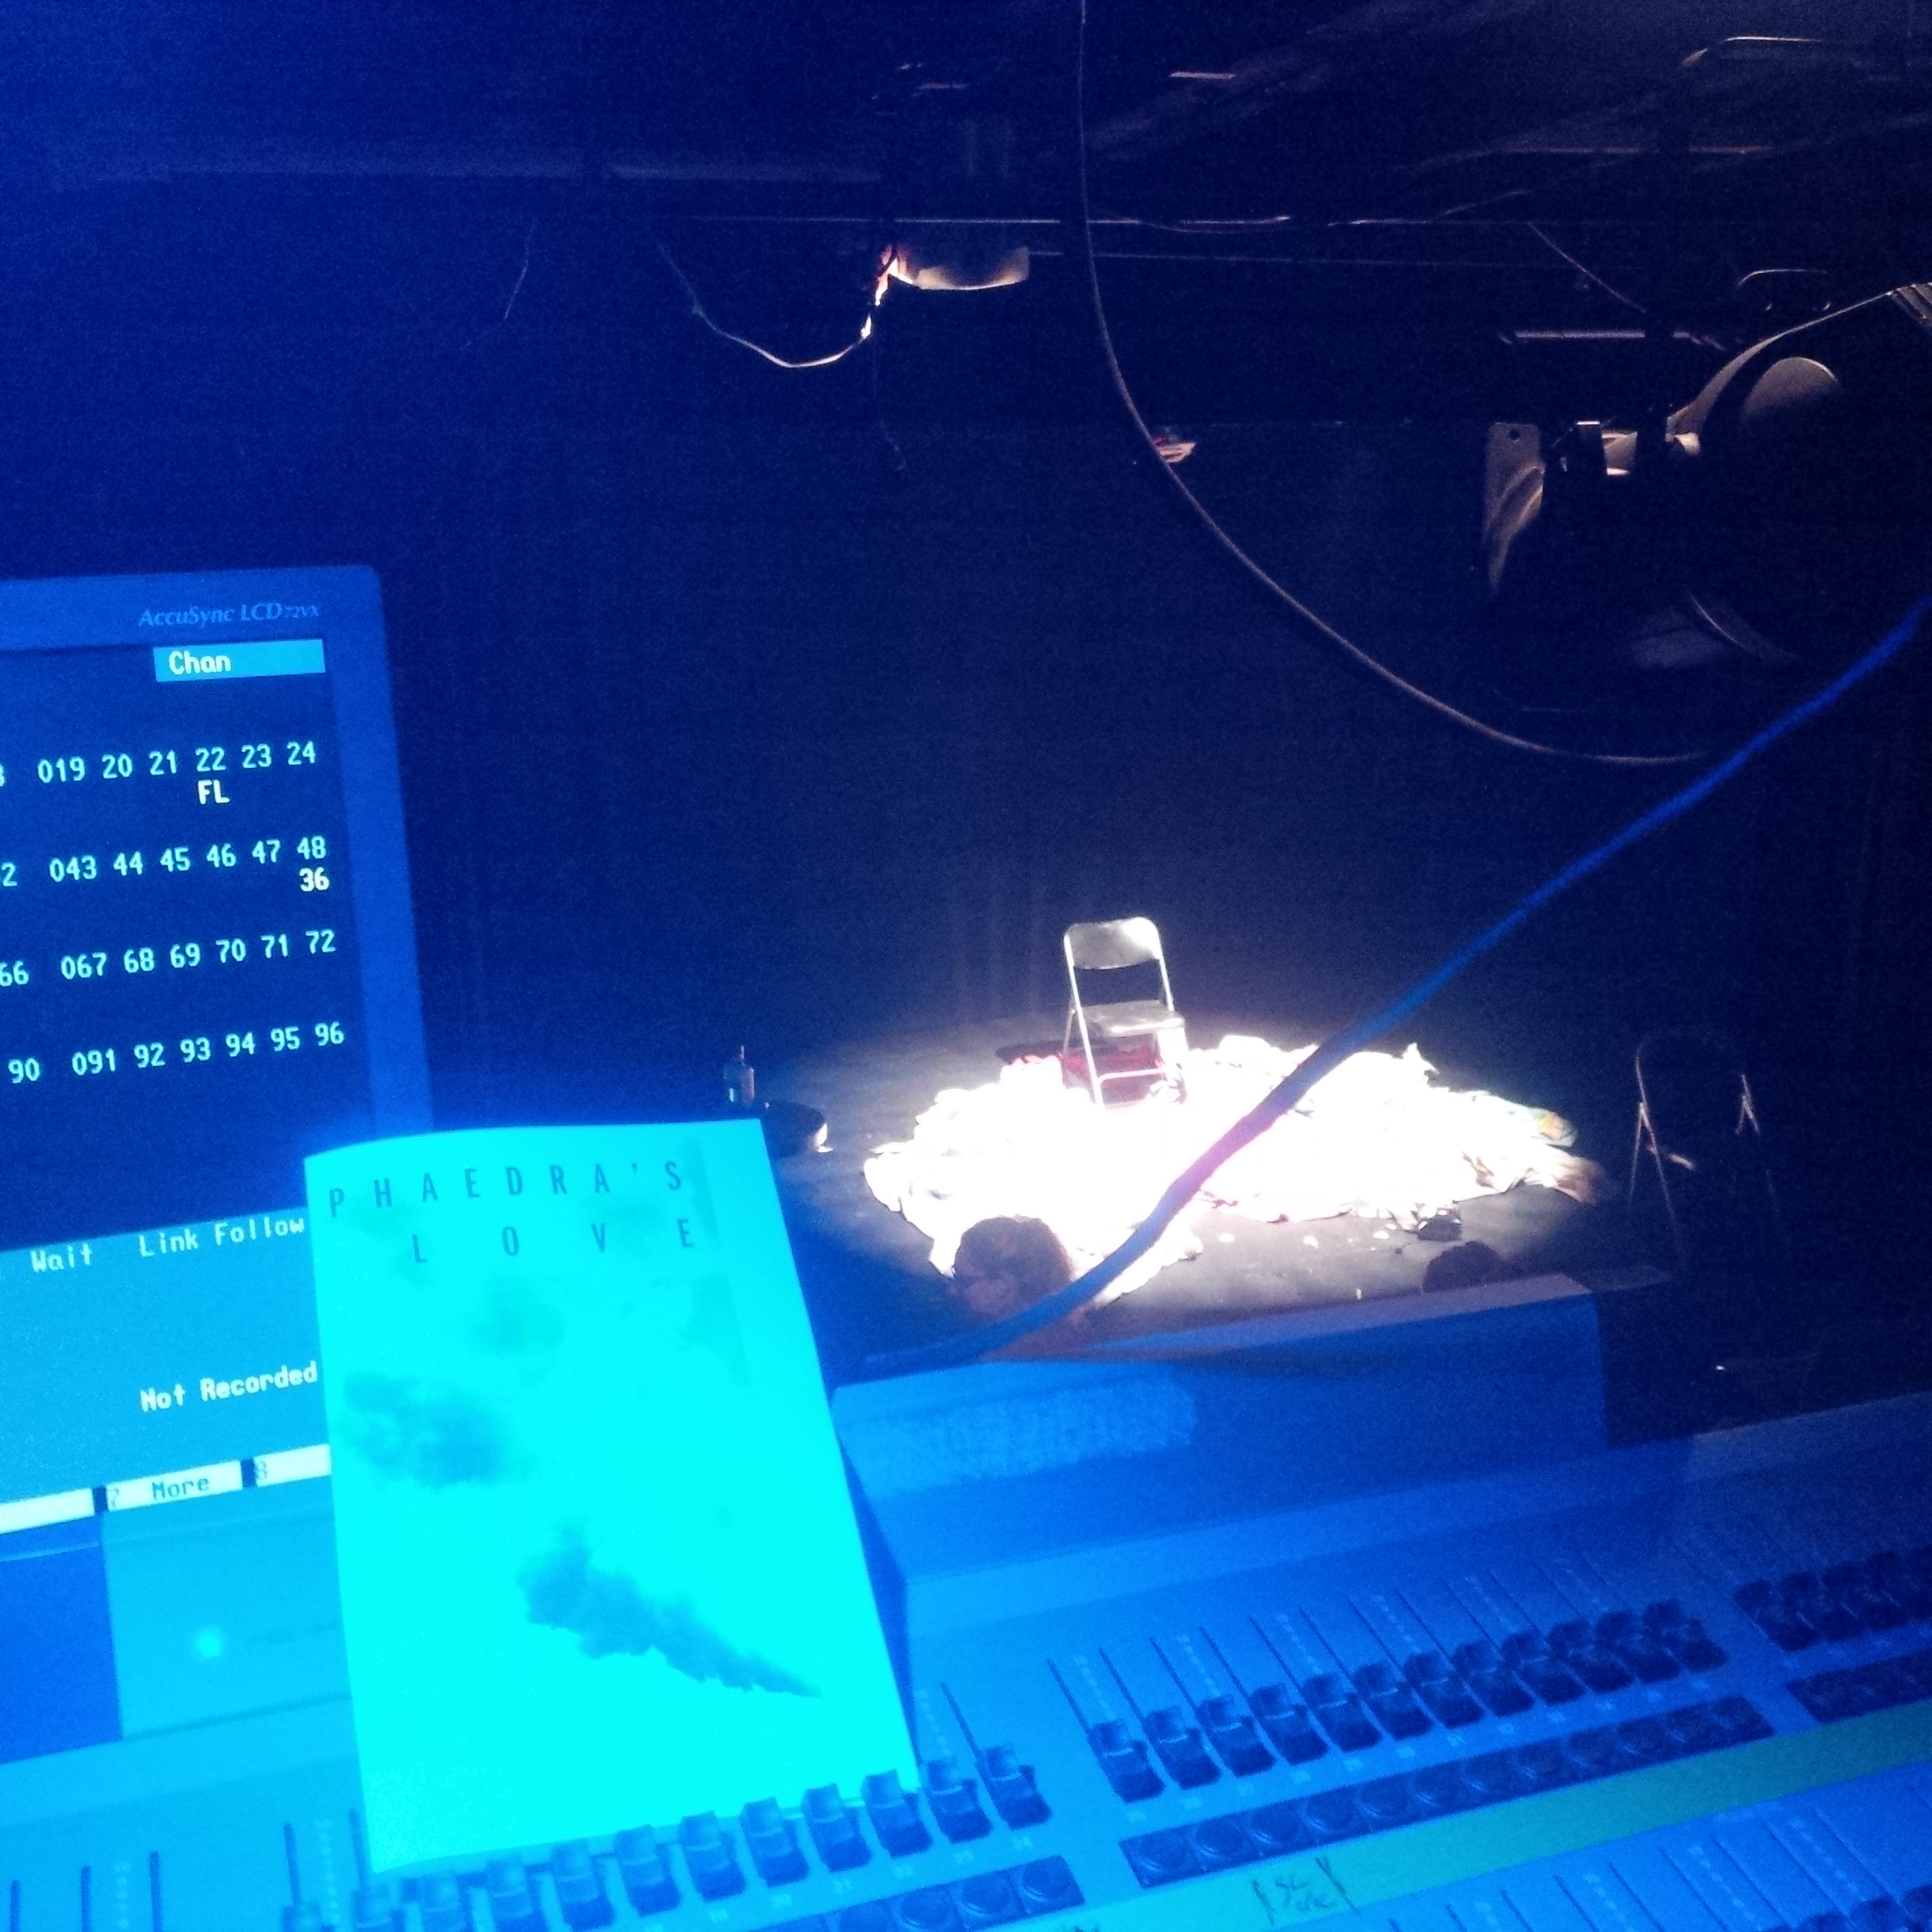 photo of a program on a sound mixing board with a spotlit chair in the background